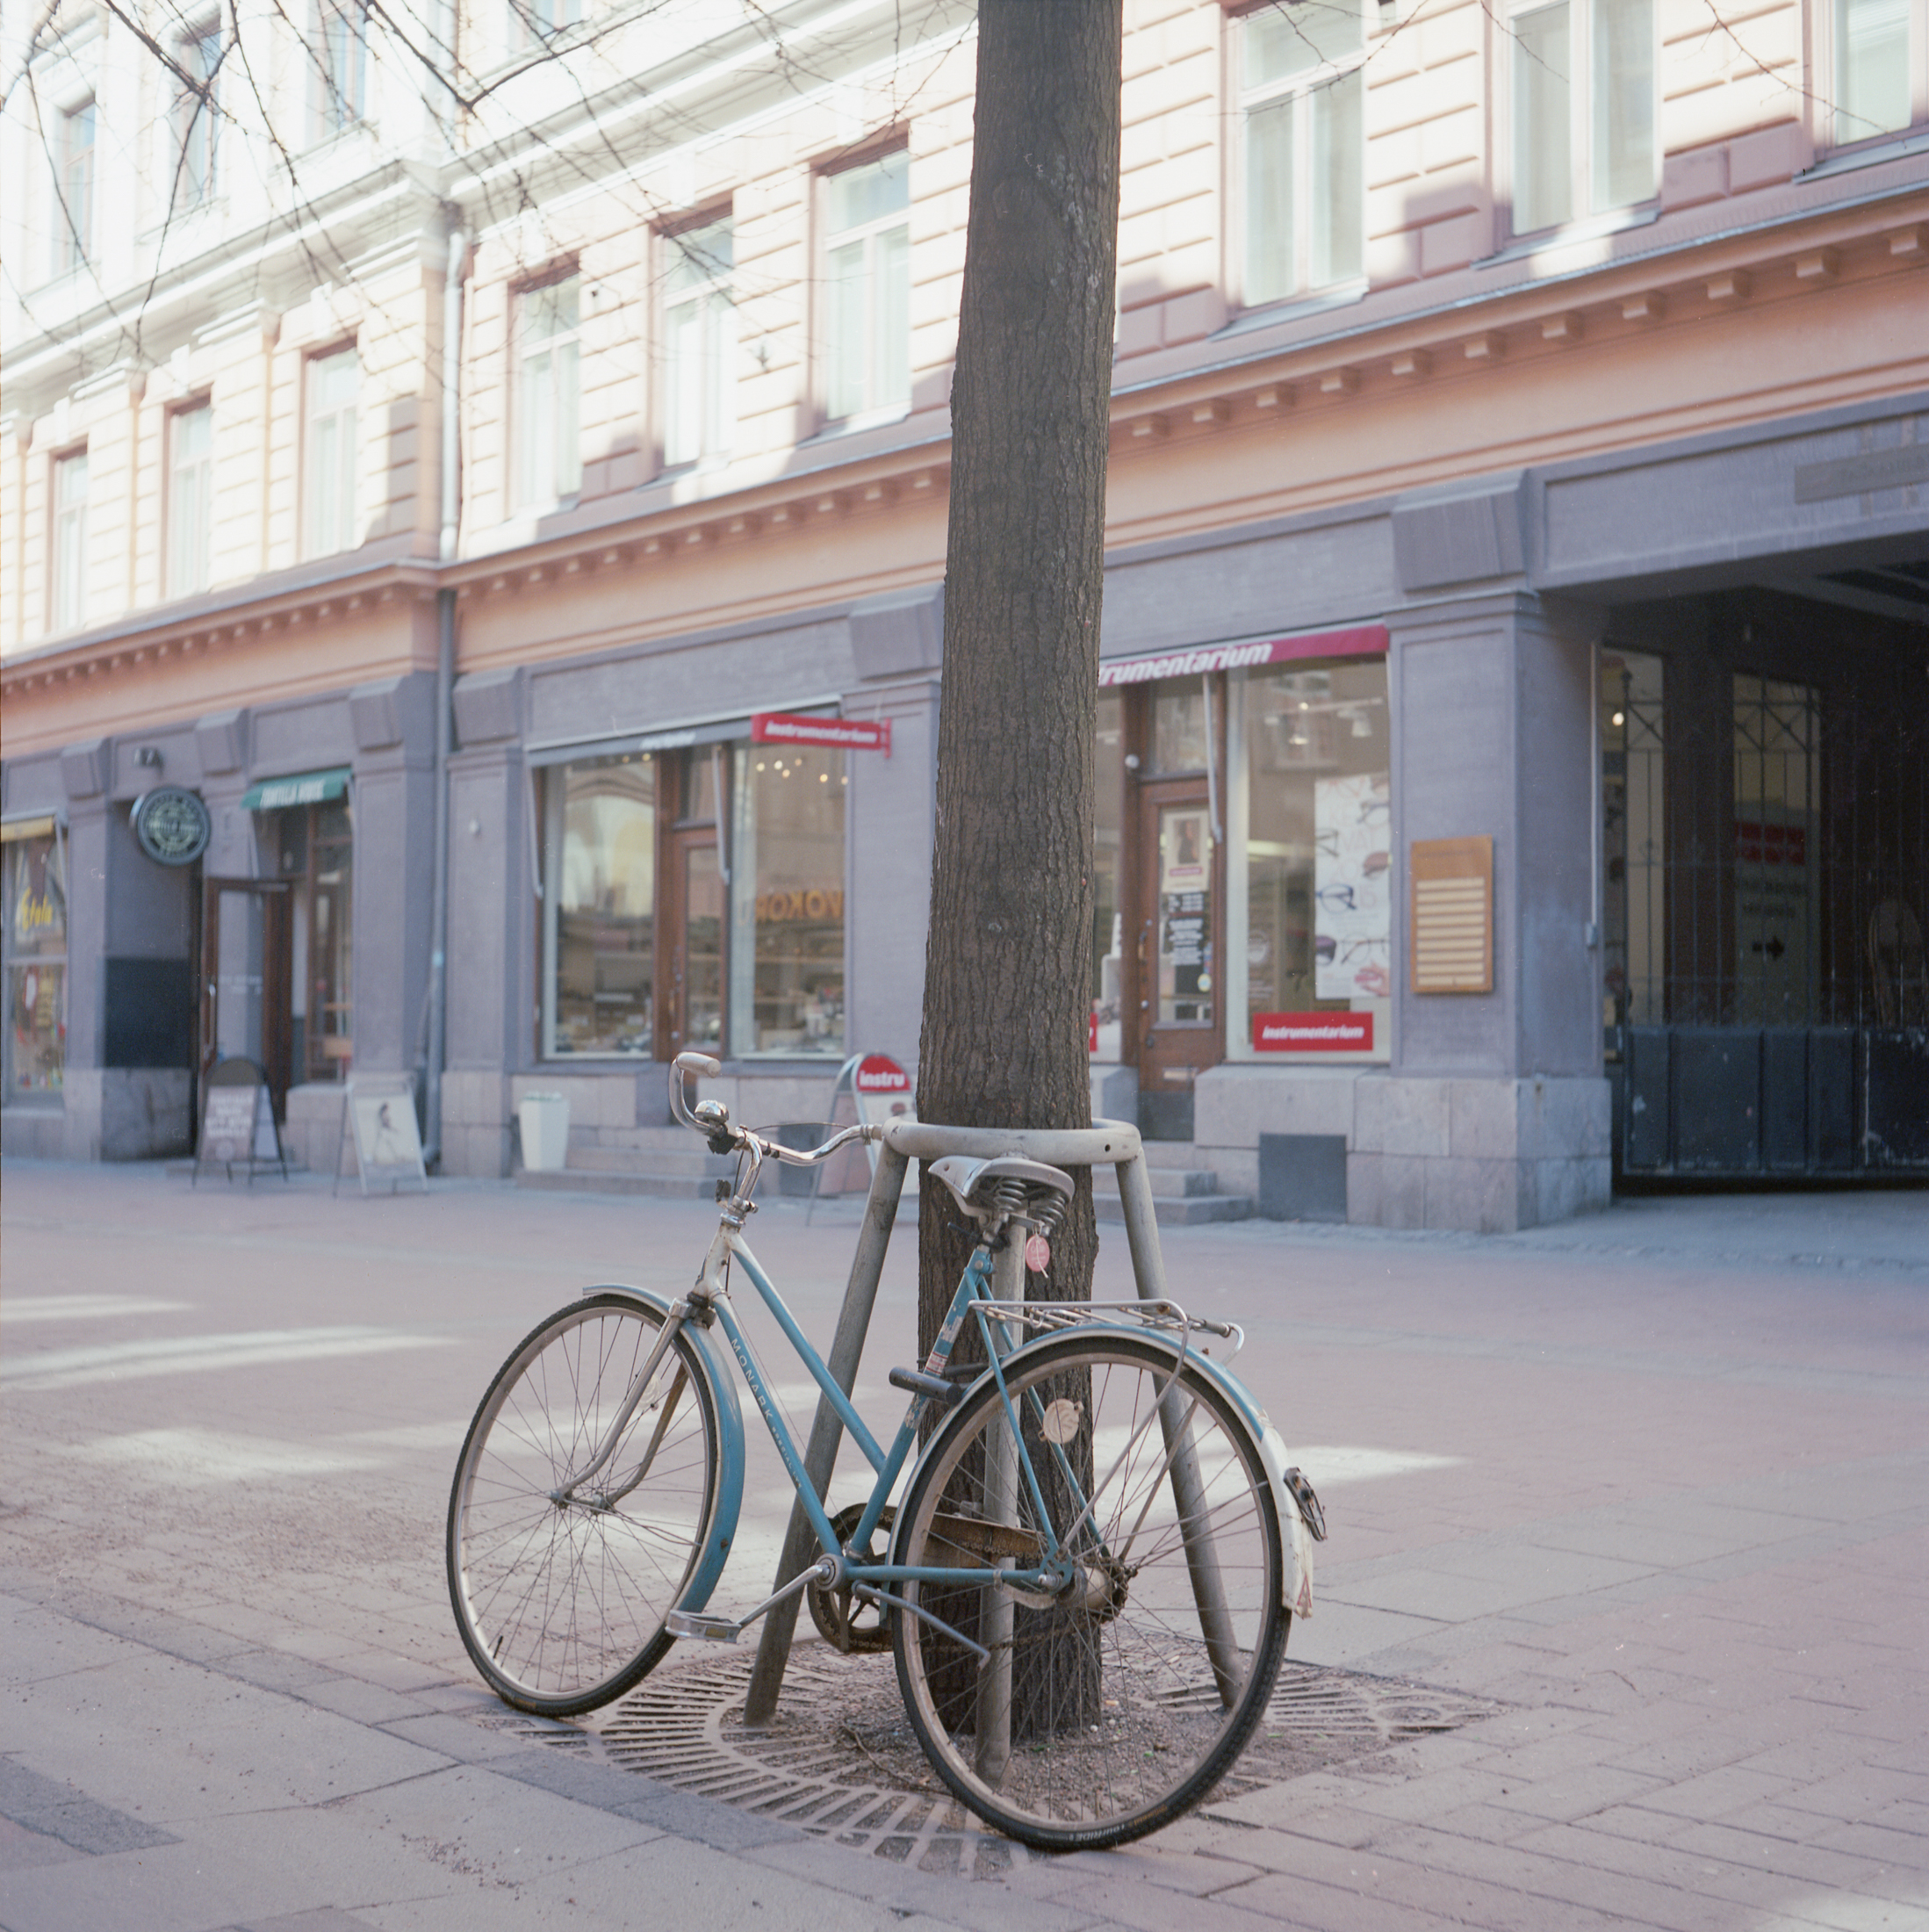 Rolleiflex Automat MX, Kodak Ektar 100, 120mm, Epson V700, 24th April 2015